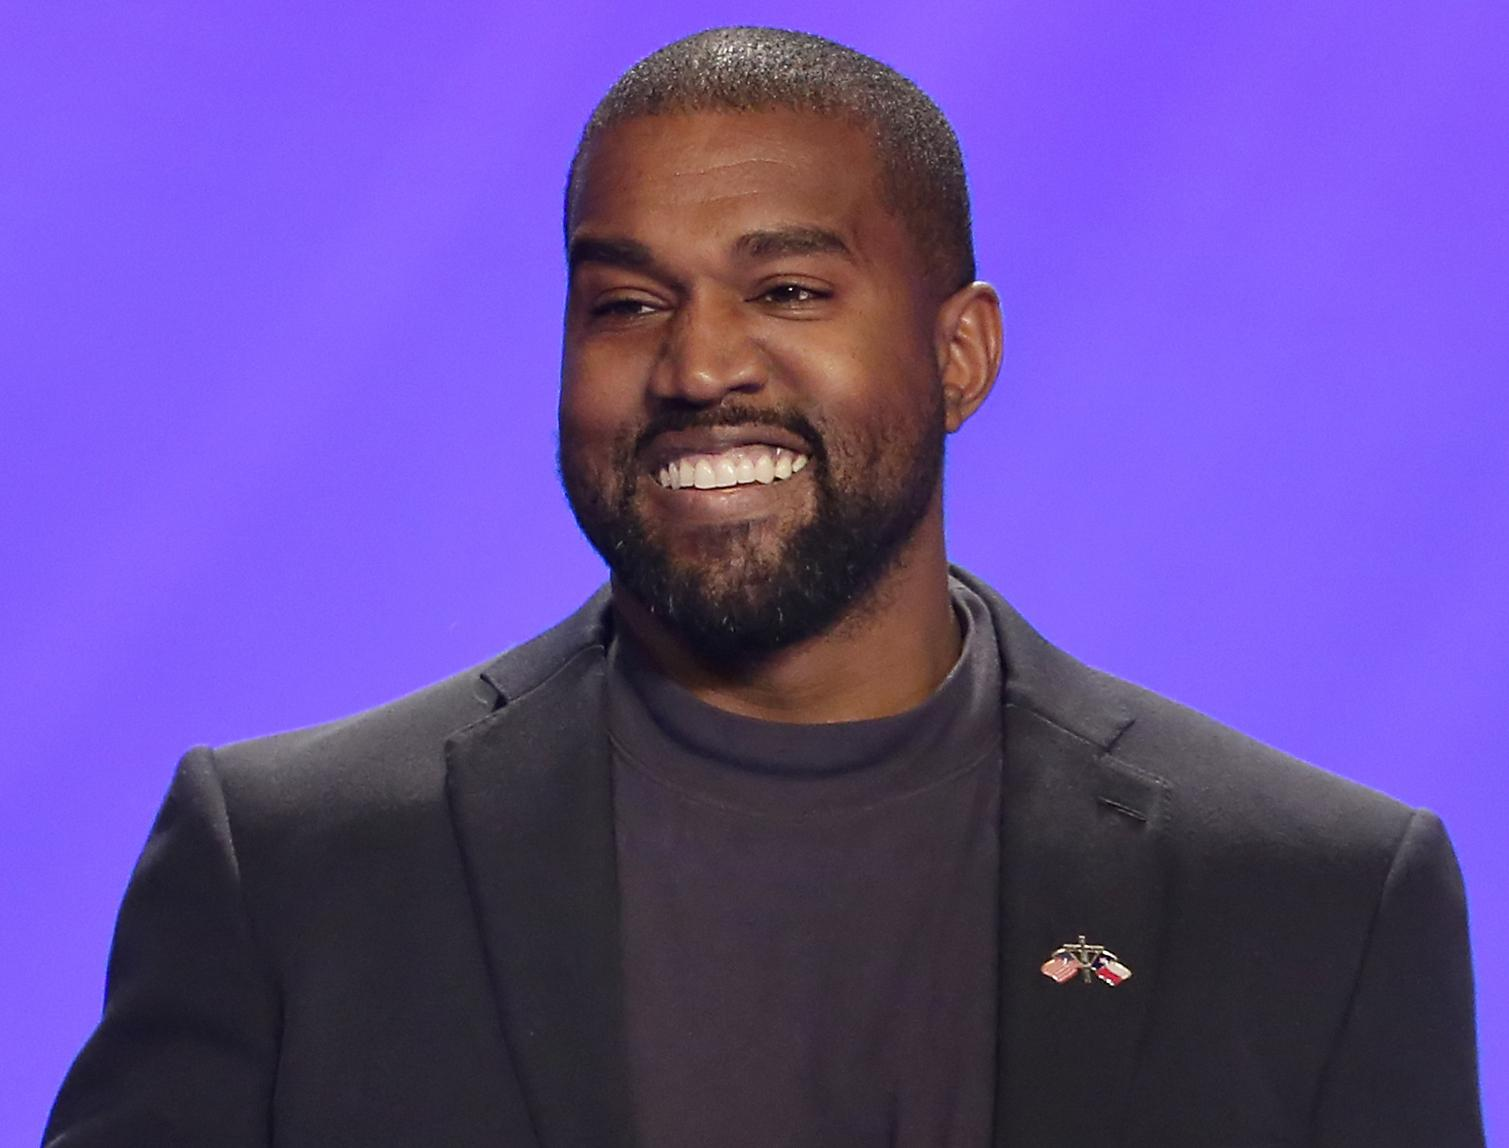 Kanye West Says God Told Him to Run for President and Suggests Trump and Biden 'Gracefully Bow Out' as He Shares Plans for His Campaign